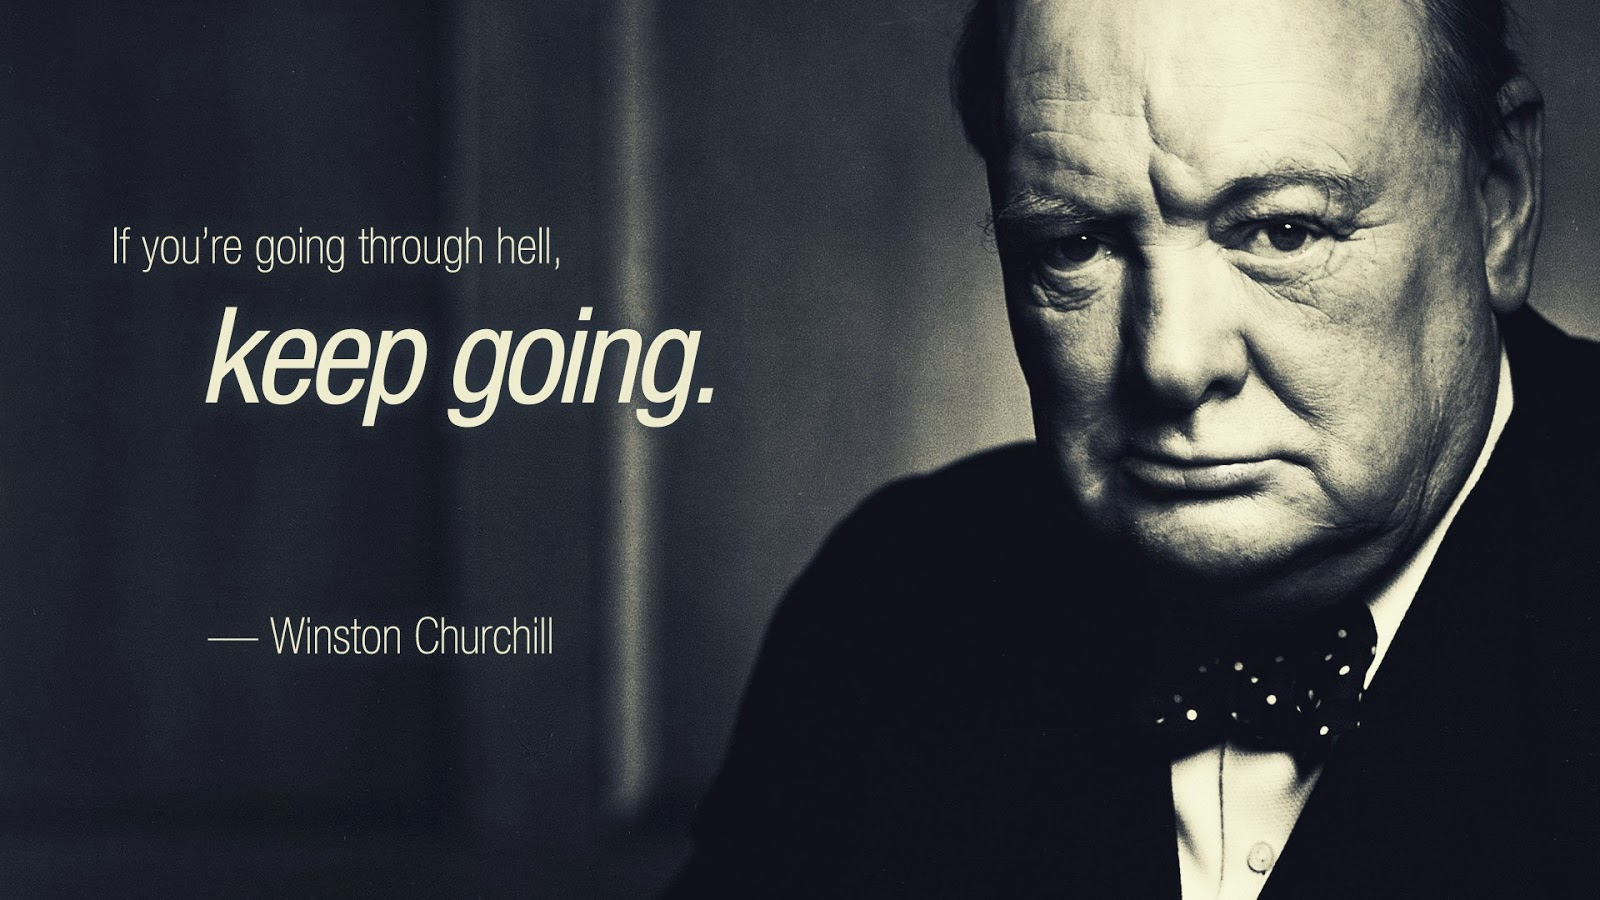 Winston Churchill Quotes - All The Best Ones To Read Now.